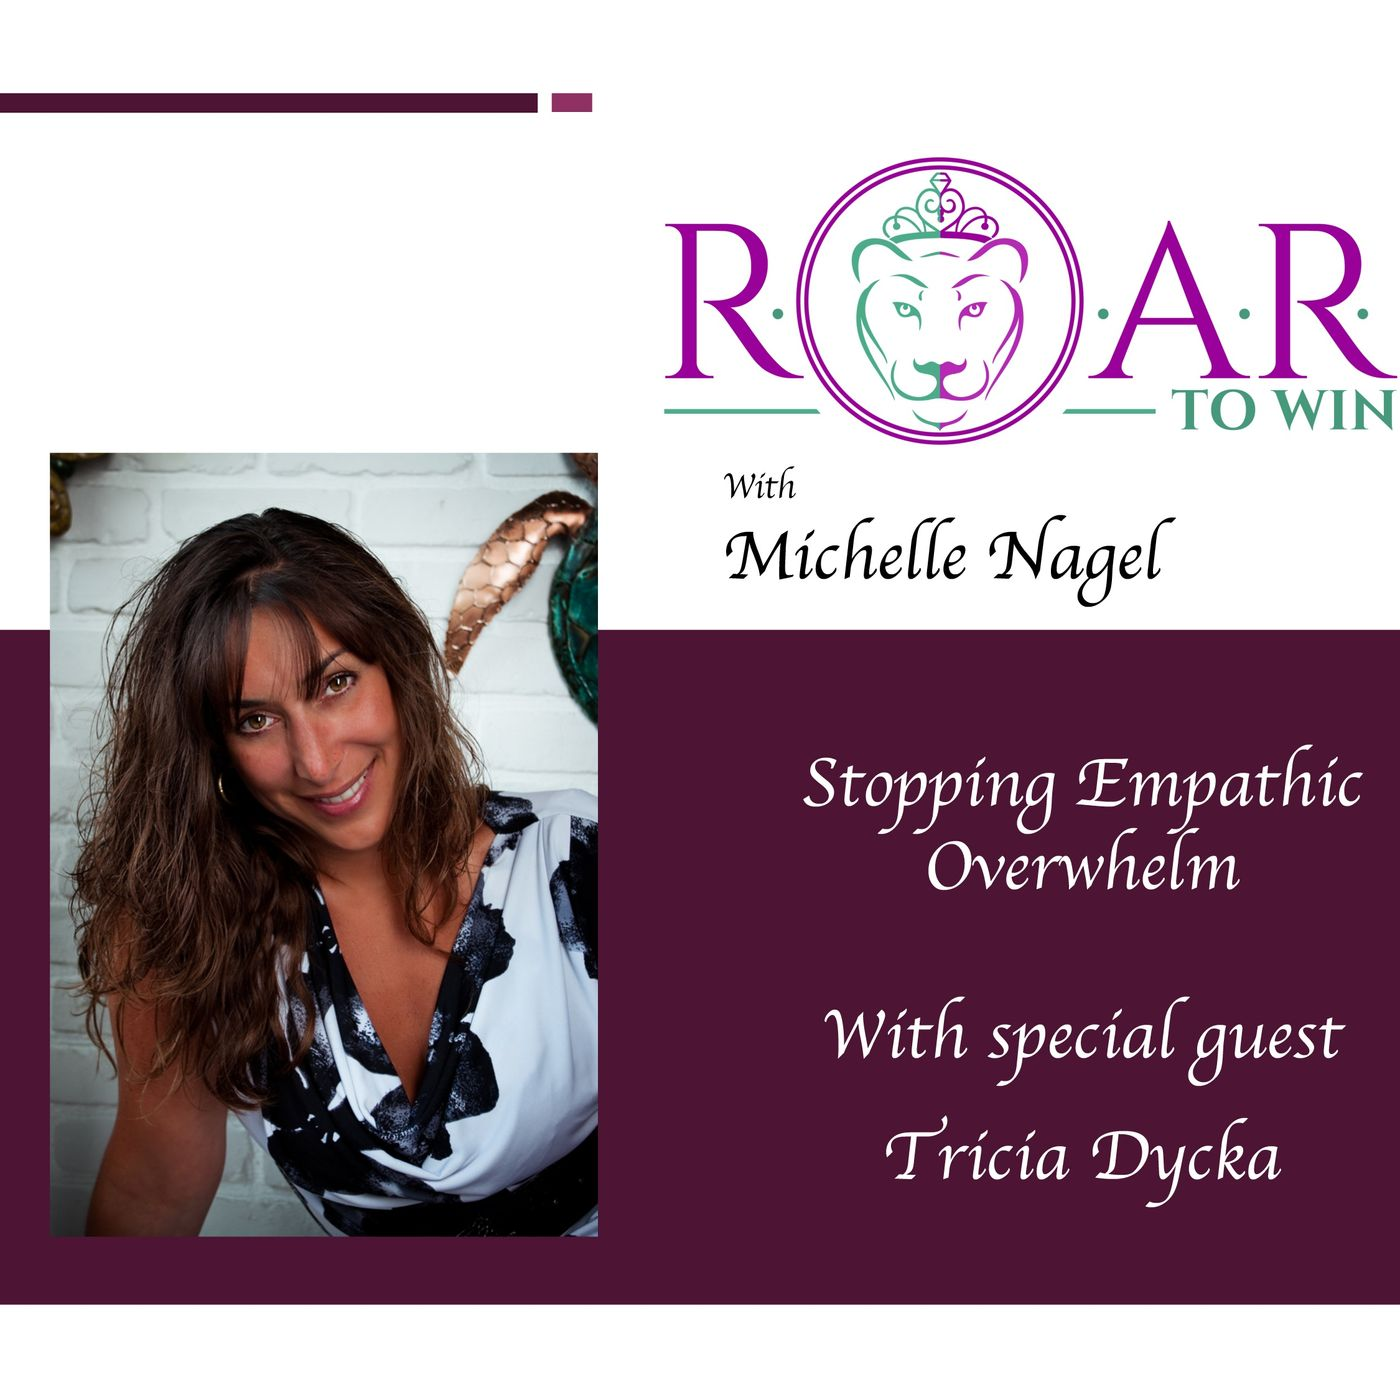 Stopping Empathic Overwhelm with Tricia Dycka